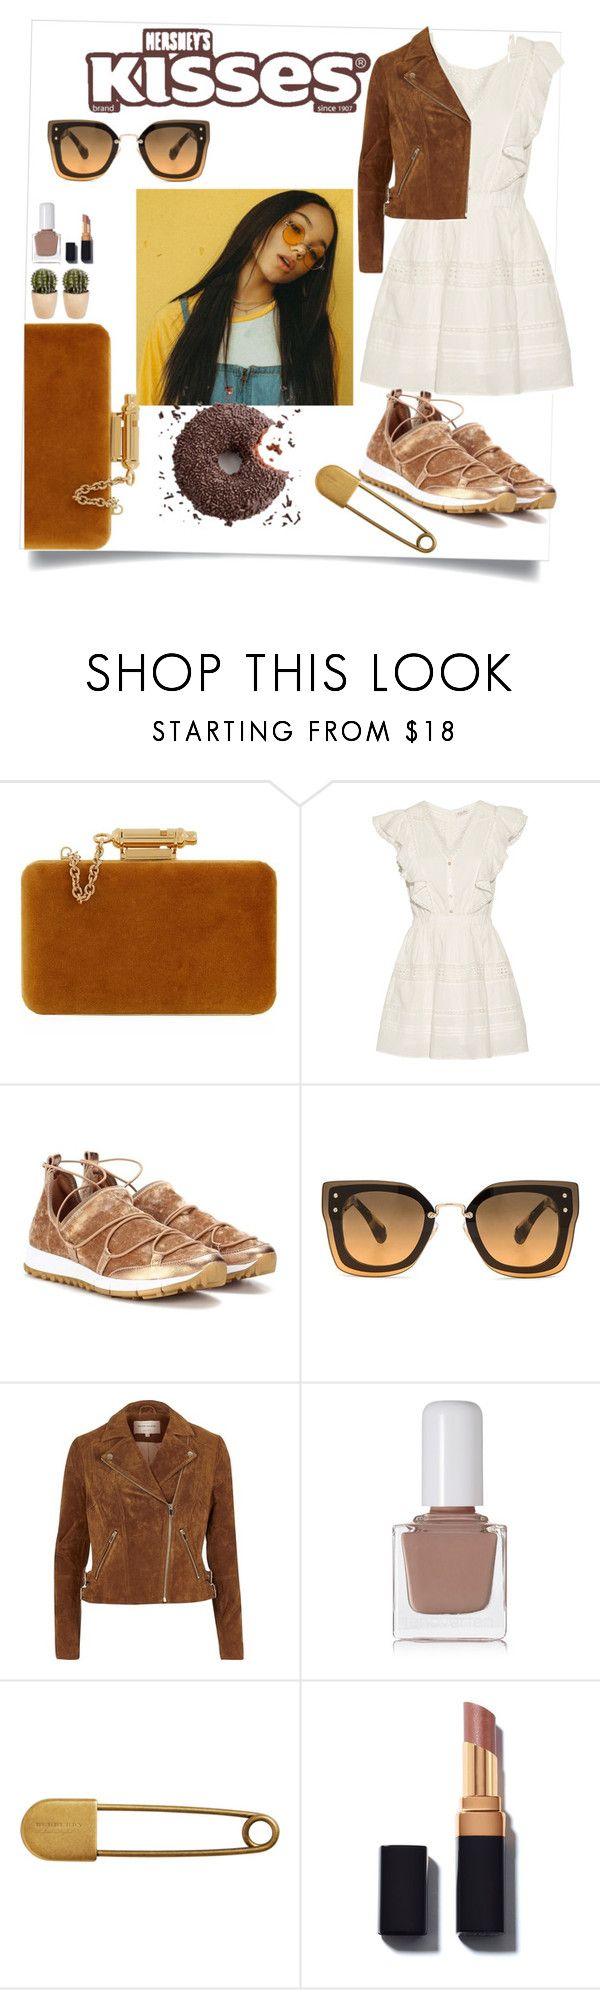 """""""It's So Bad, It's Good"""" by cassiecronk ❤ liked on Polyvore featuring Sophie Hulme, LoveShackFancy, Jimmy Choo, Miu Miu, River Island, tenoverten, Hershey's and Burberry"""